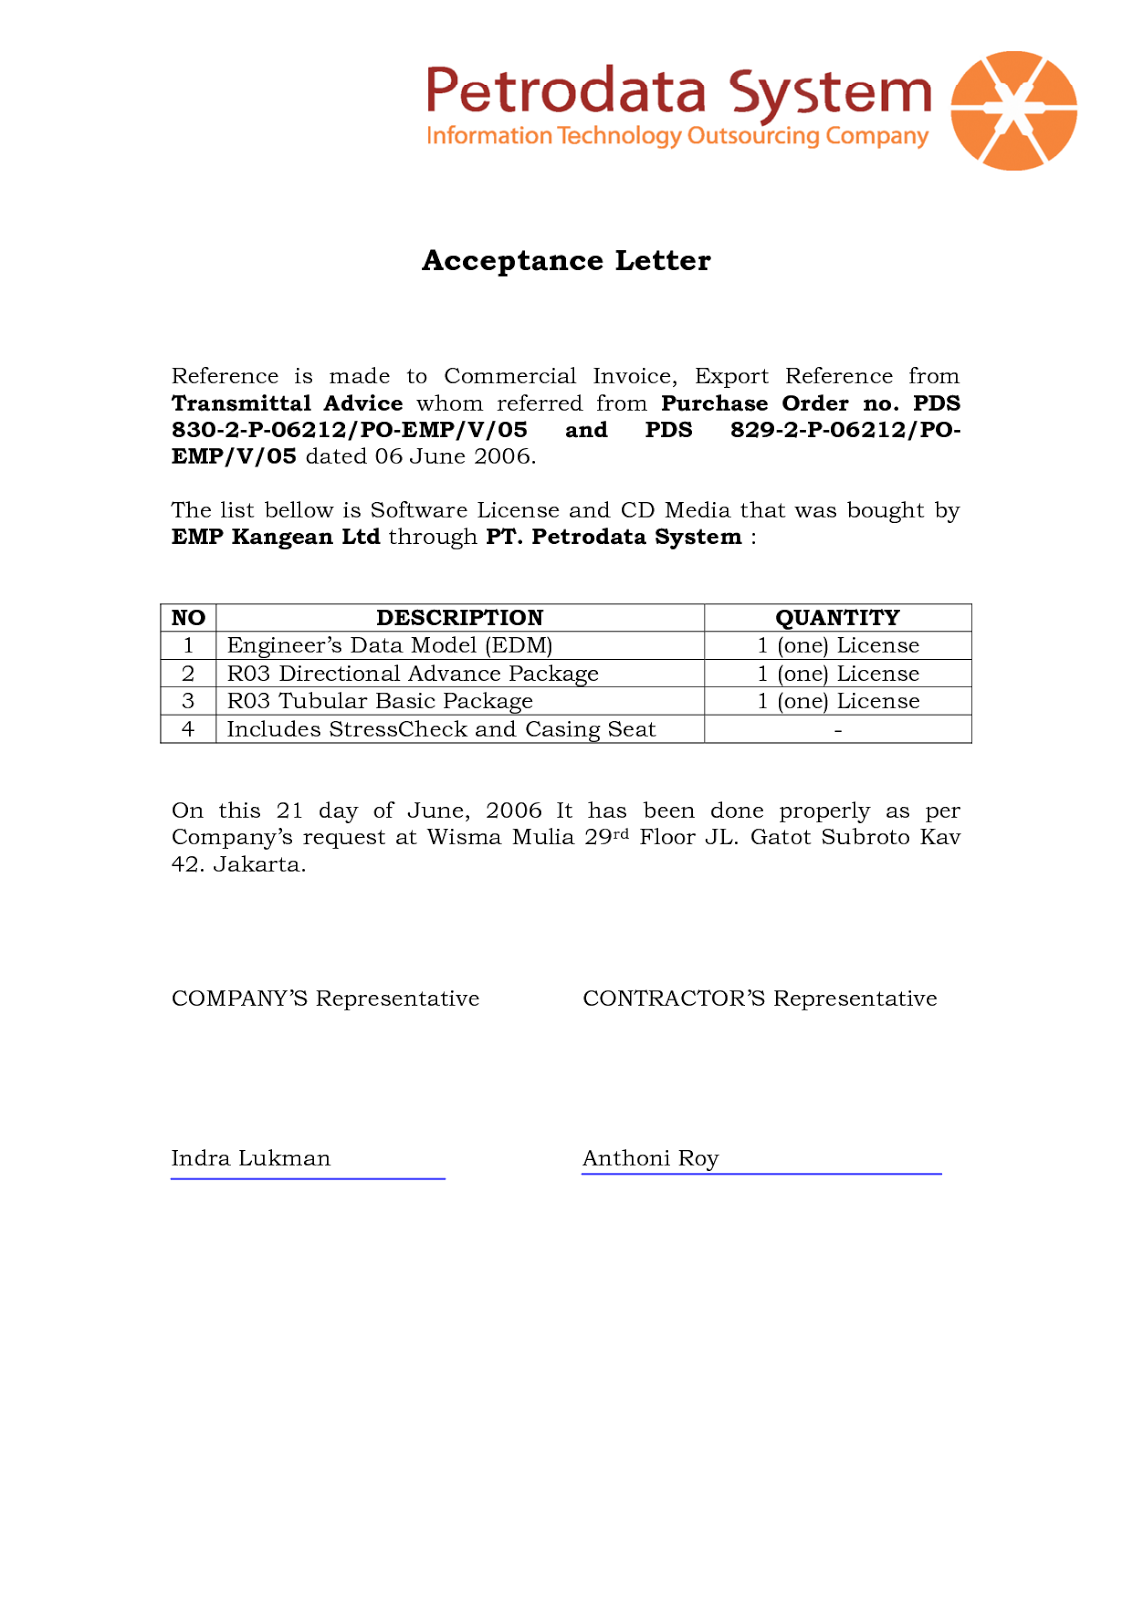 Dini Safitri THE STYLES AND TYPES OF BUSINESS LETTER – Purchase Order Letter Format